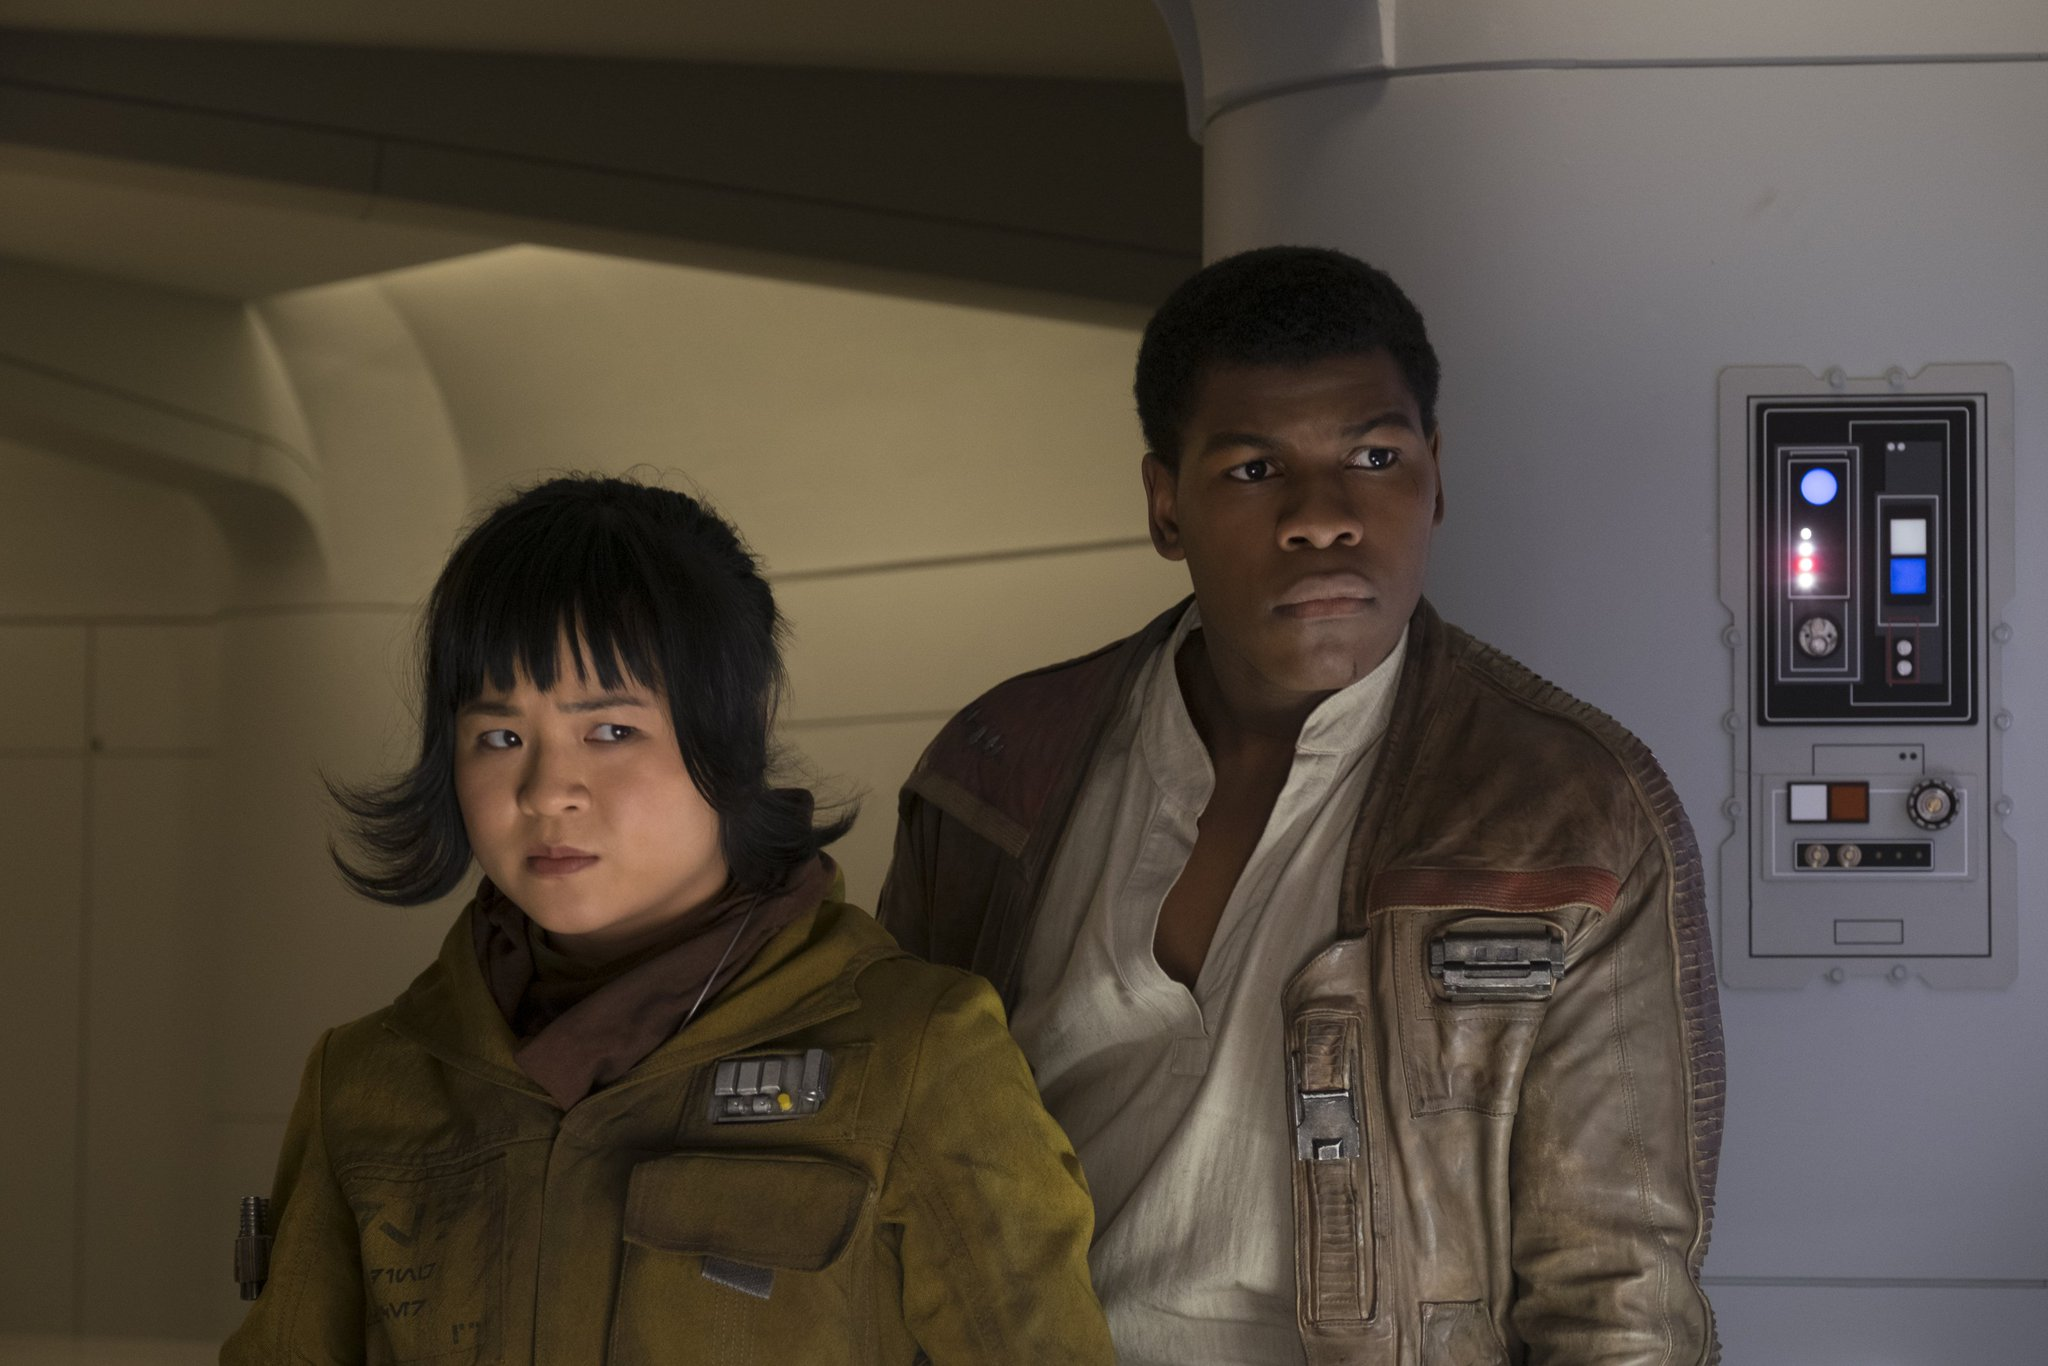 13 characters you need to know before seeing #StarWarsTheLastJedi https://t.co/Kyykn1OCud https://t.co/d4NEa6RM0j